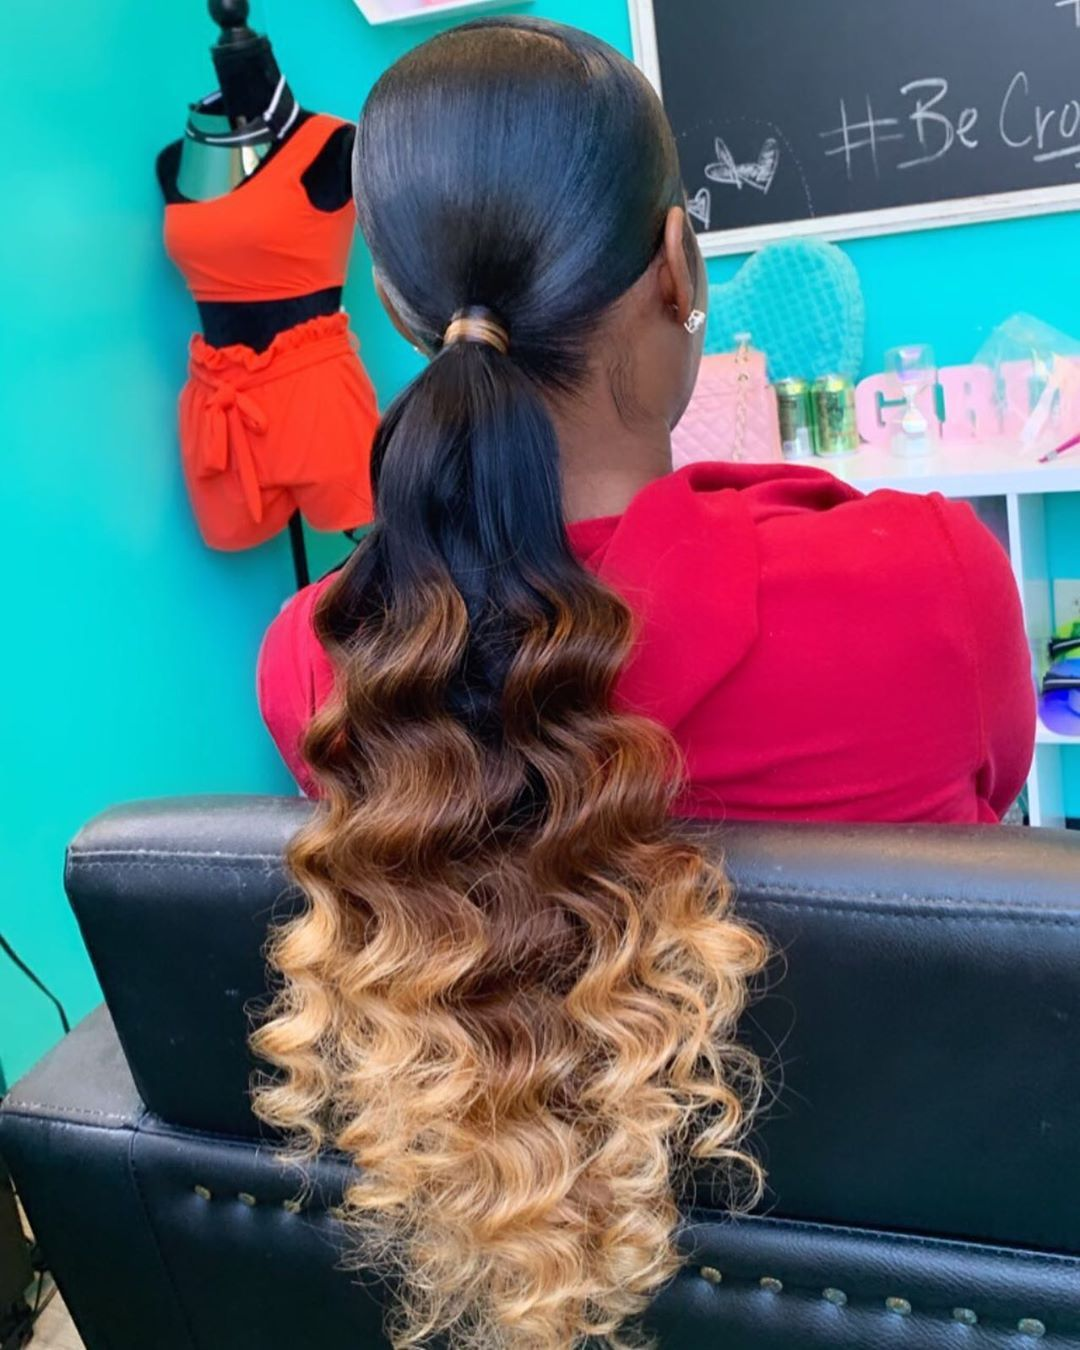 """Crowned Studios on Instagram: """"Hairstyle : Low Ponytail + Wand Curls  To Book , Use The Book Button •No DMs , Text Only •Deposit Required For All Appts  #atlhairstylist…"""""""